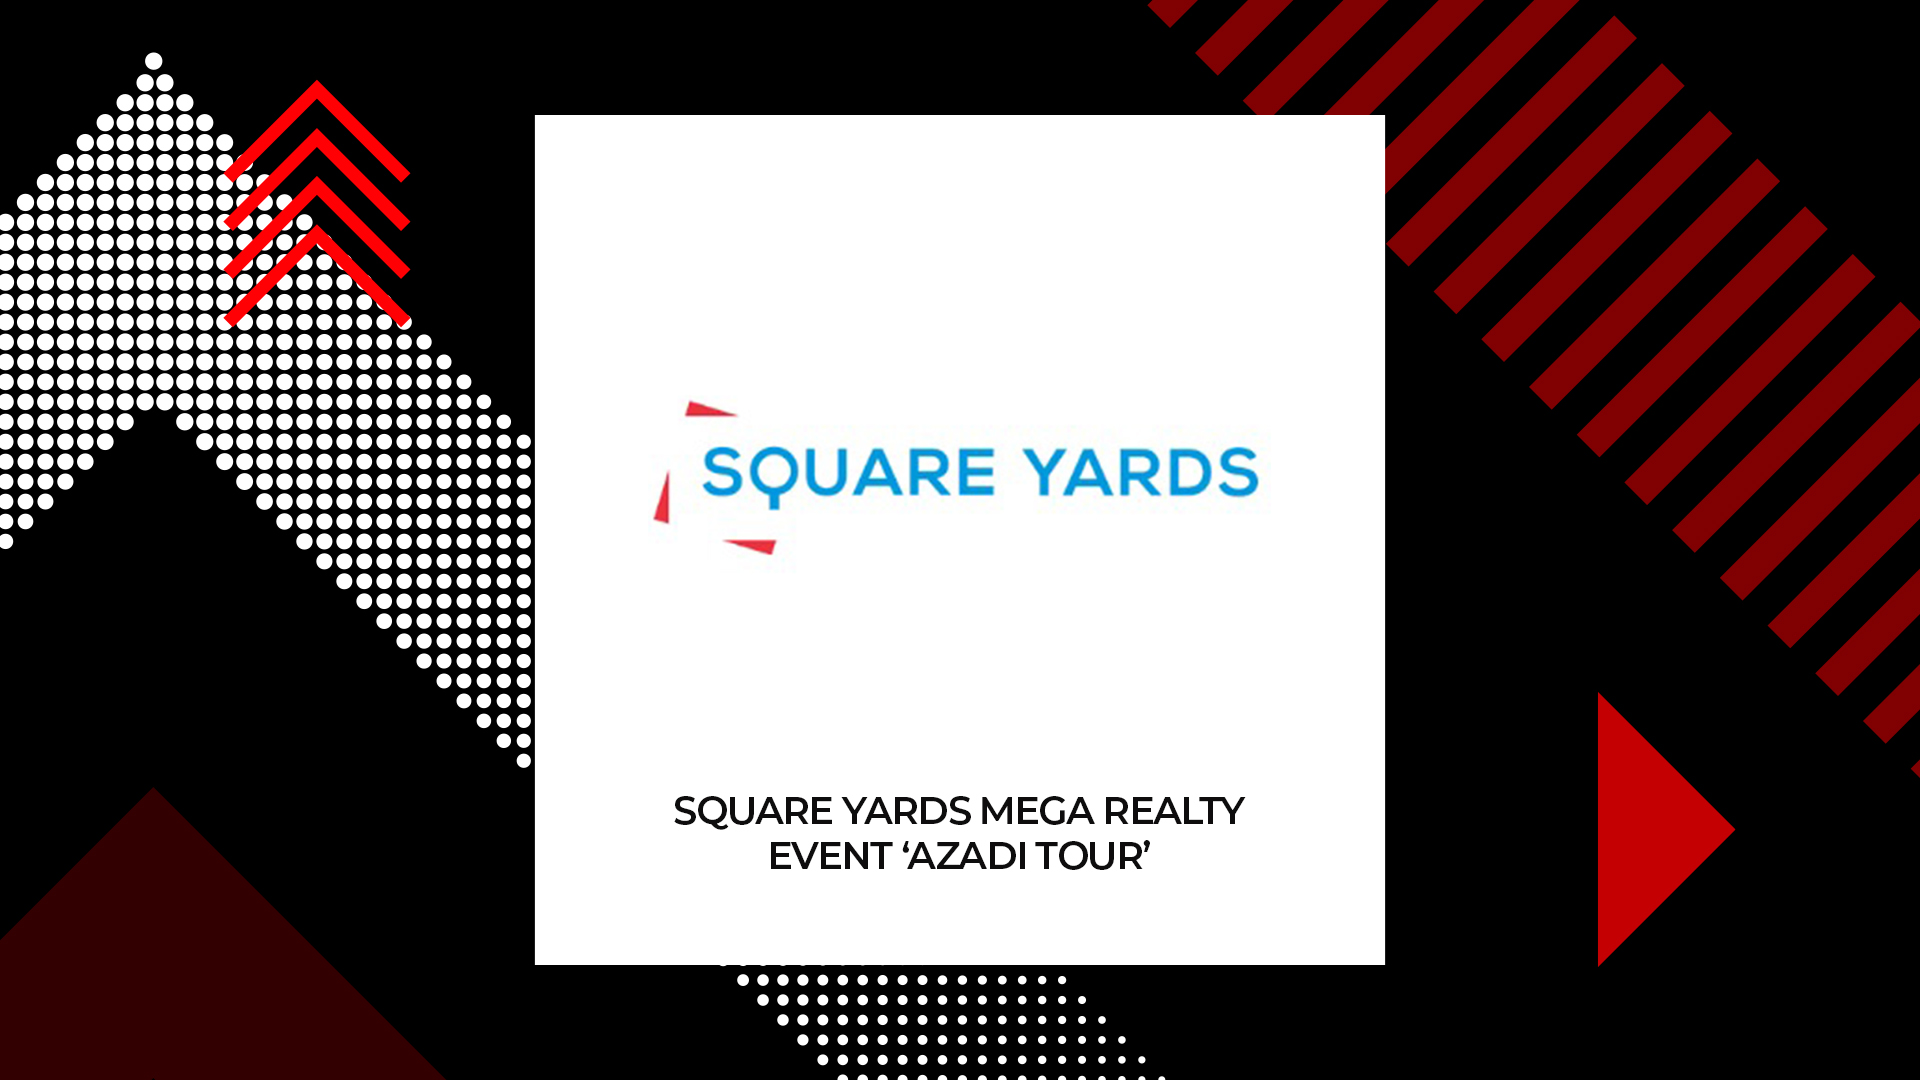 SquareYards accomplishes one of the most successful O2O campaigns